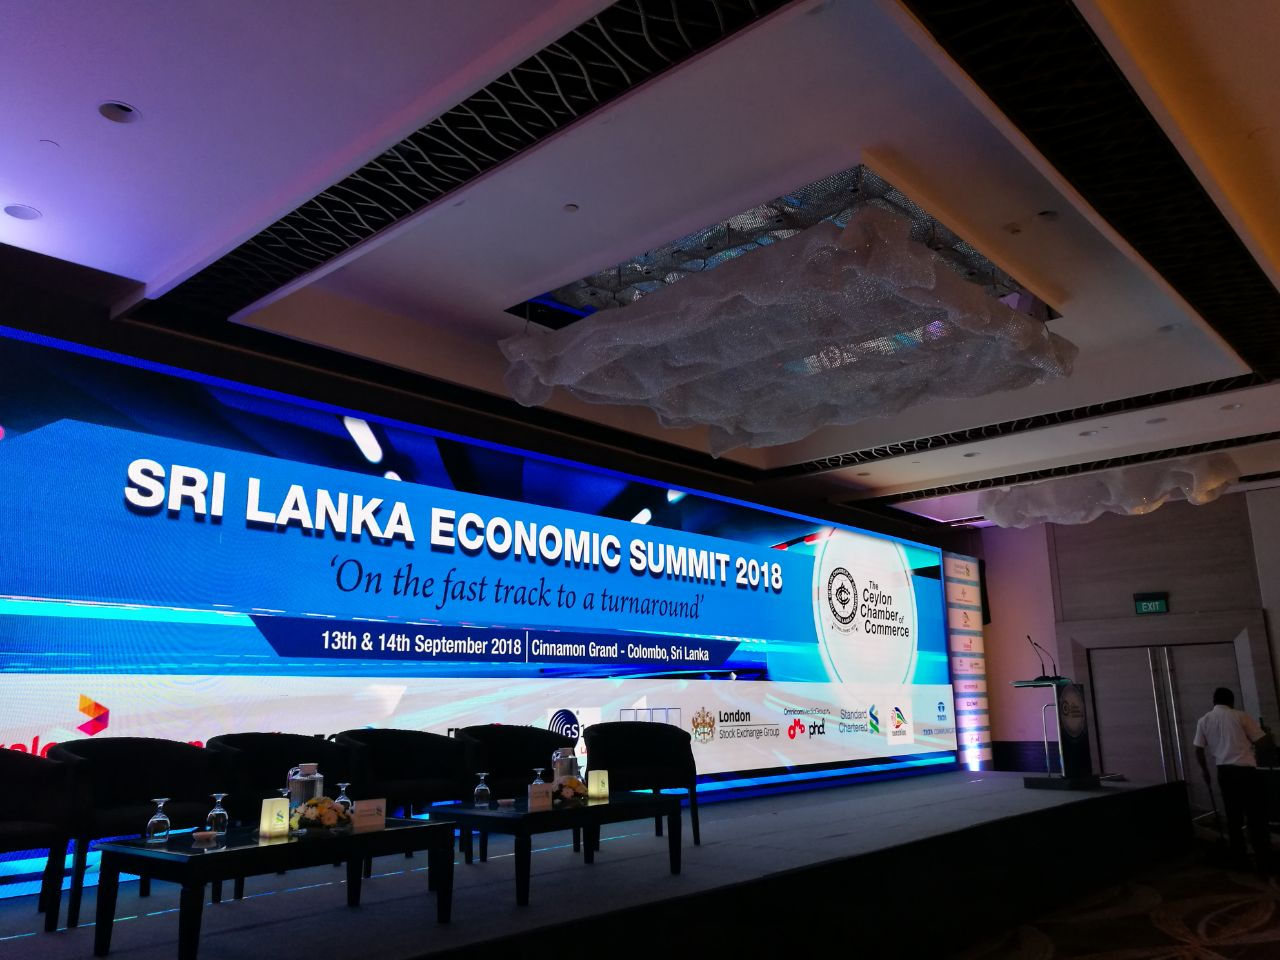 Sri Lanka Economic Summit 2018 kicks off today!